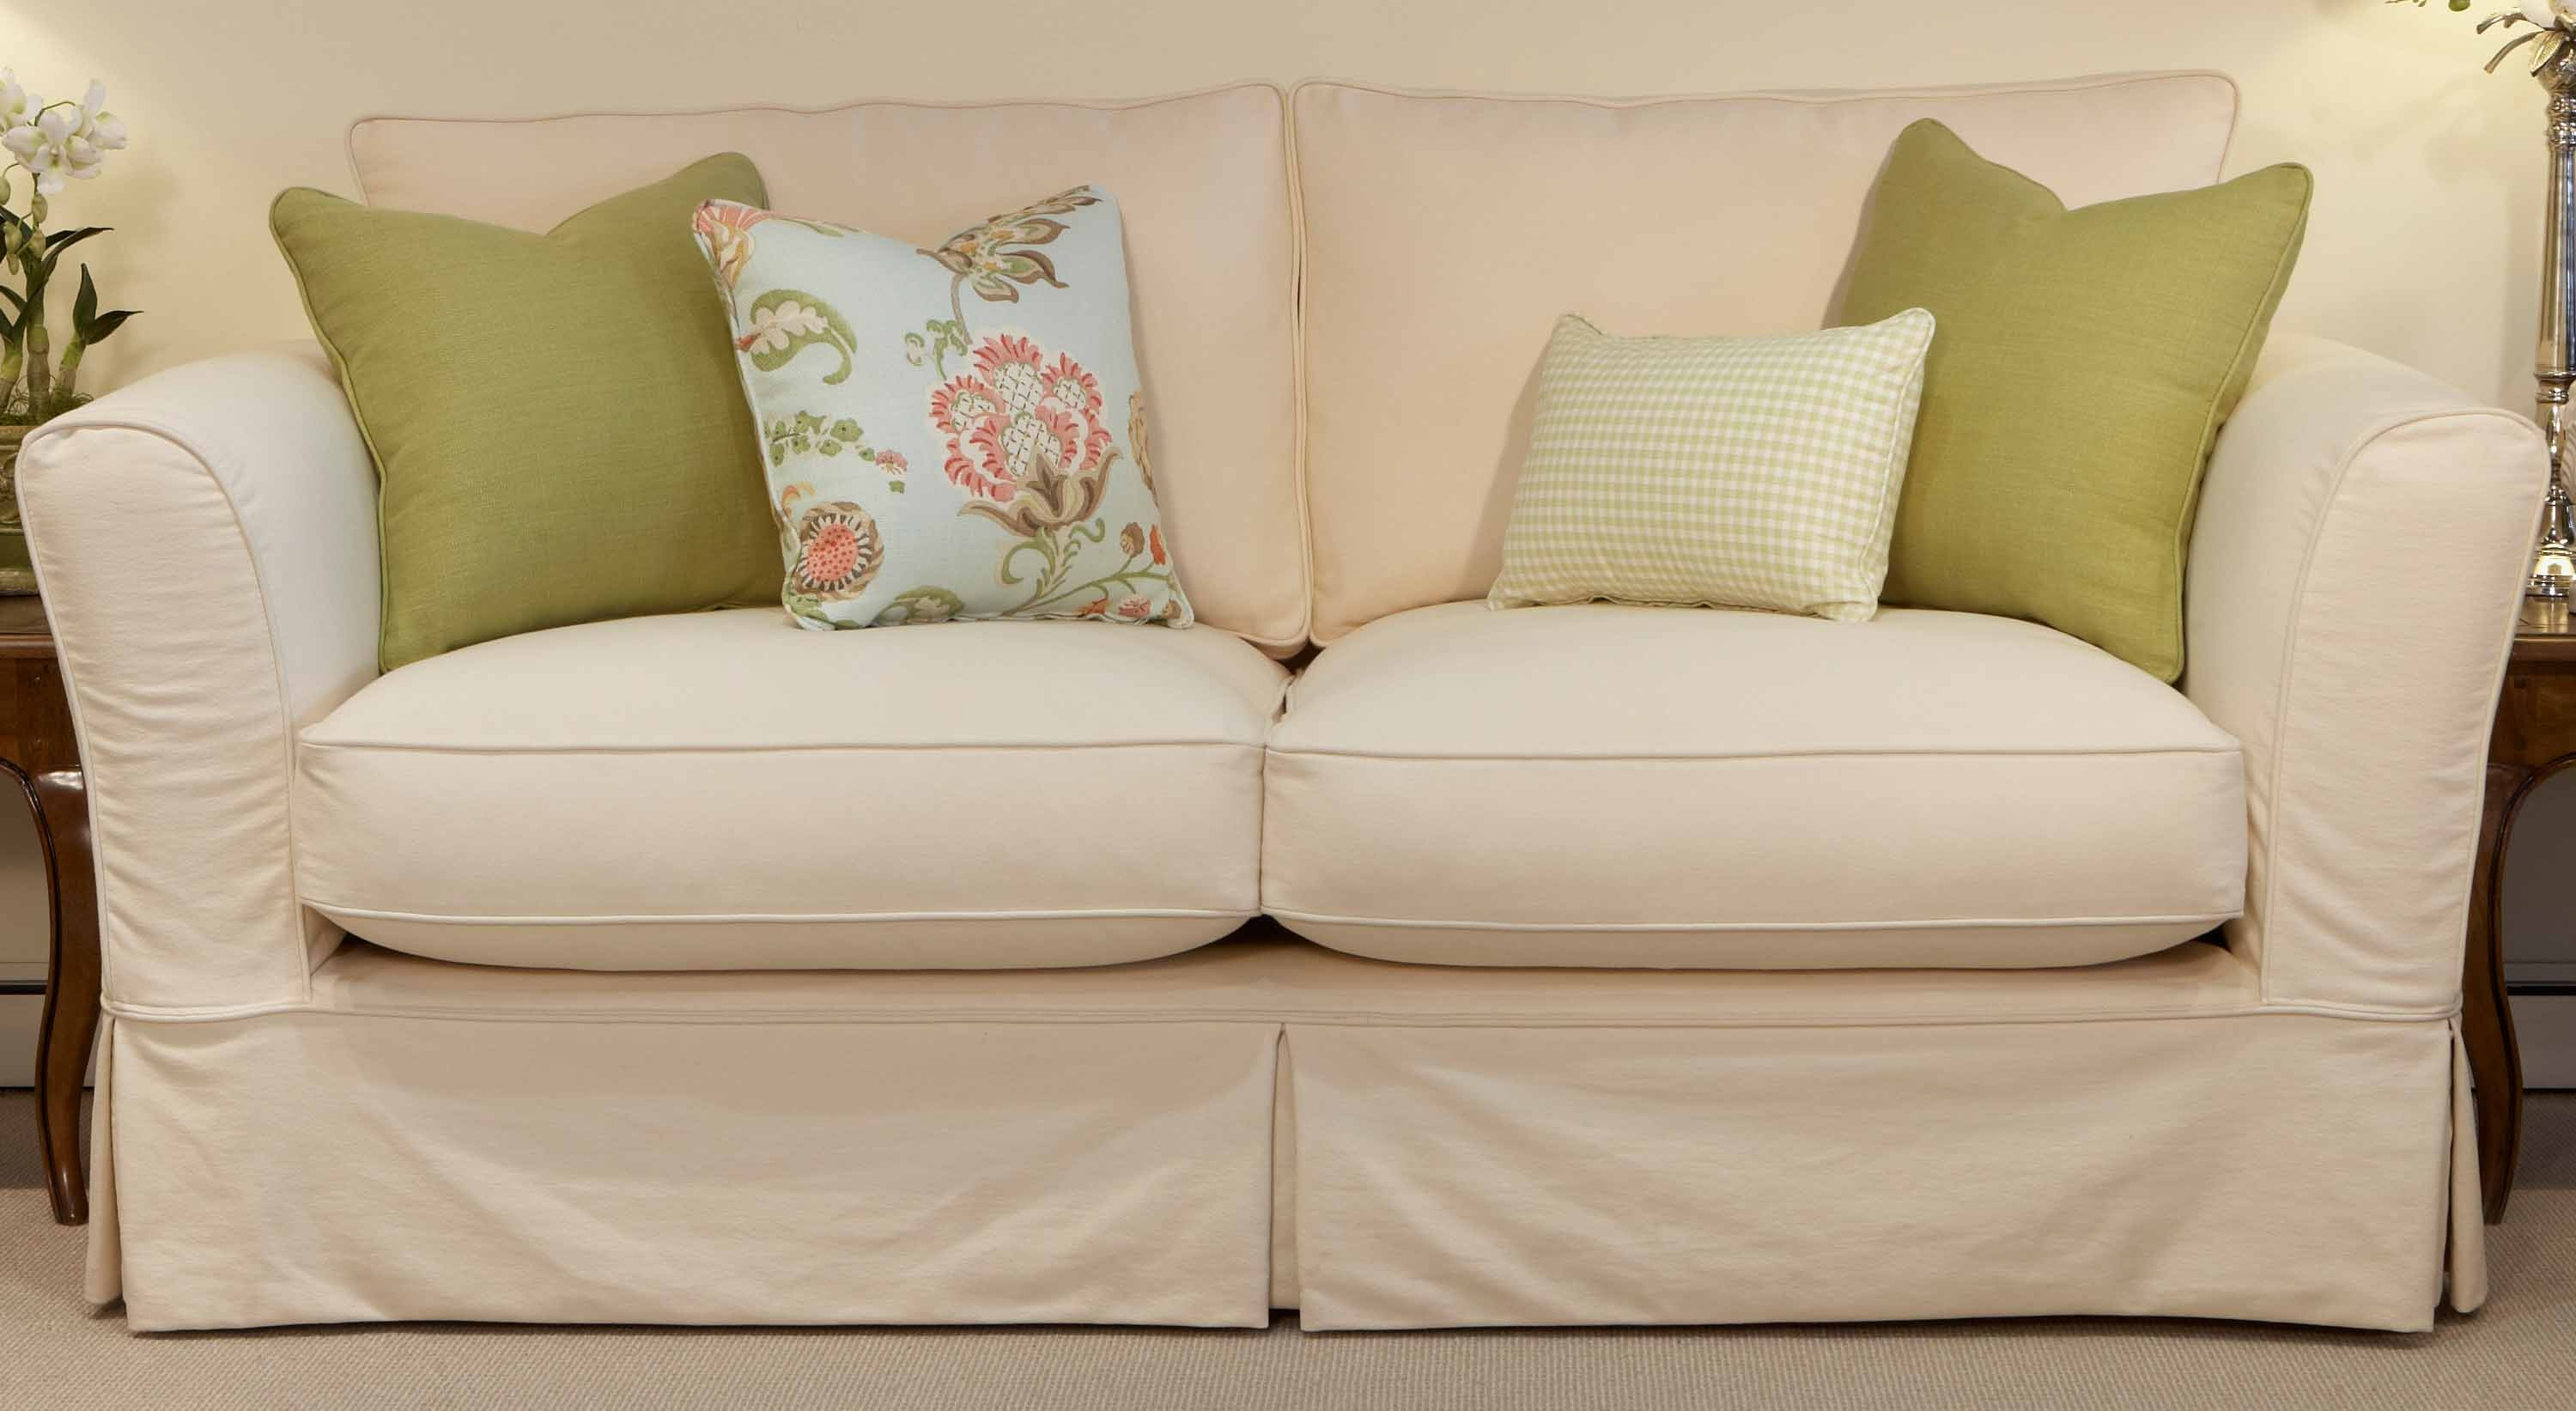 sectional sofas with removable slipcovers eco friendly sofa toronto 15 43 covers ideas